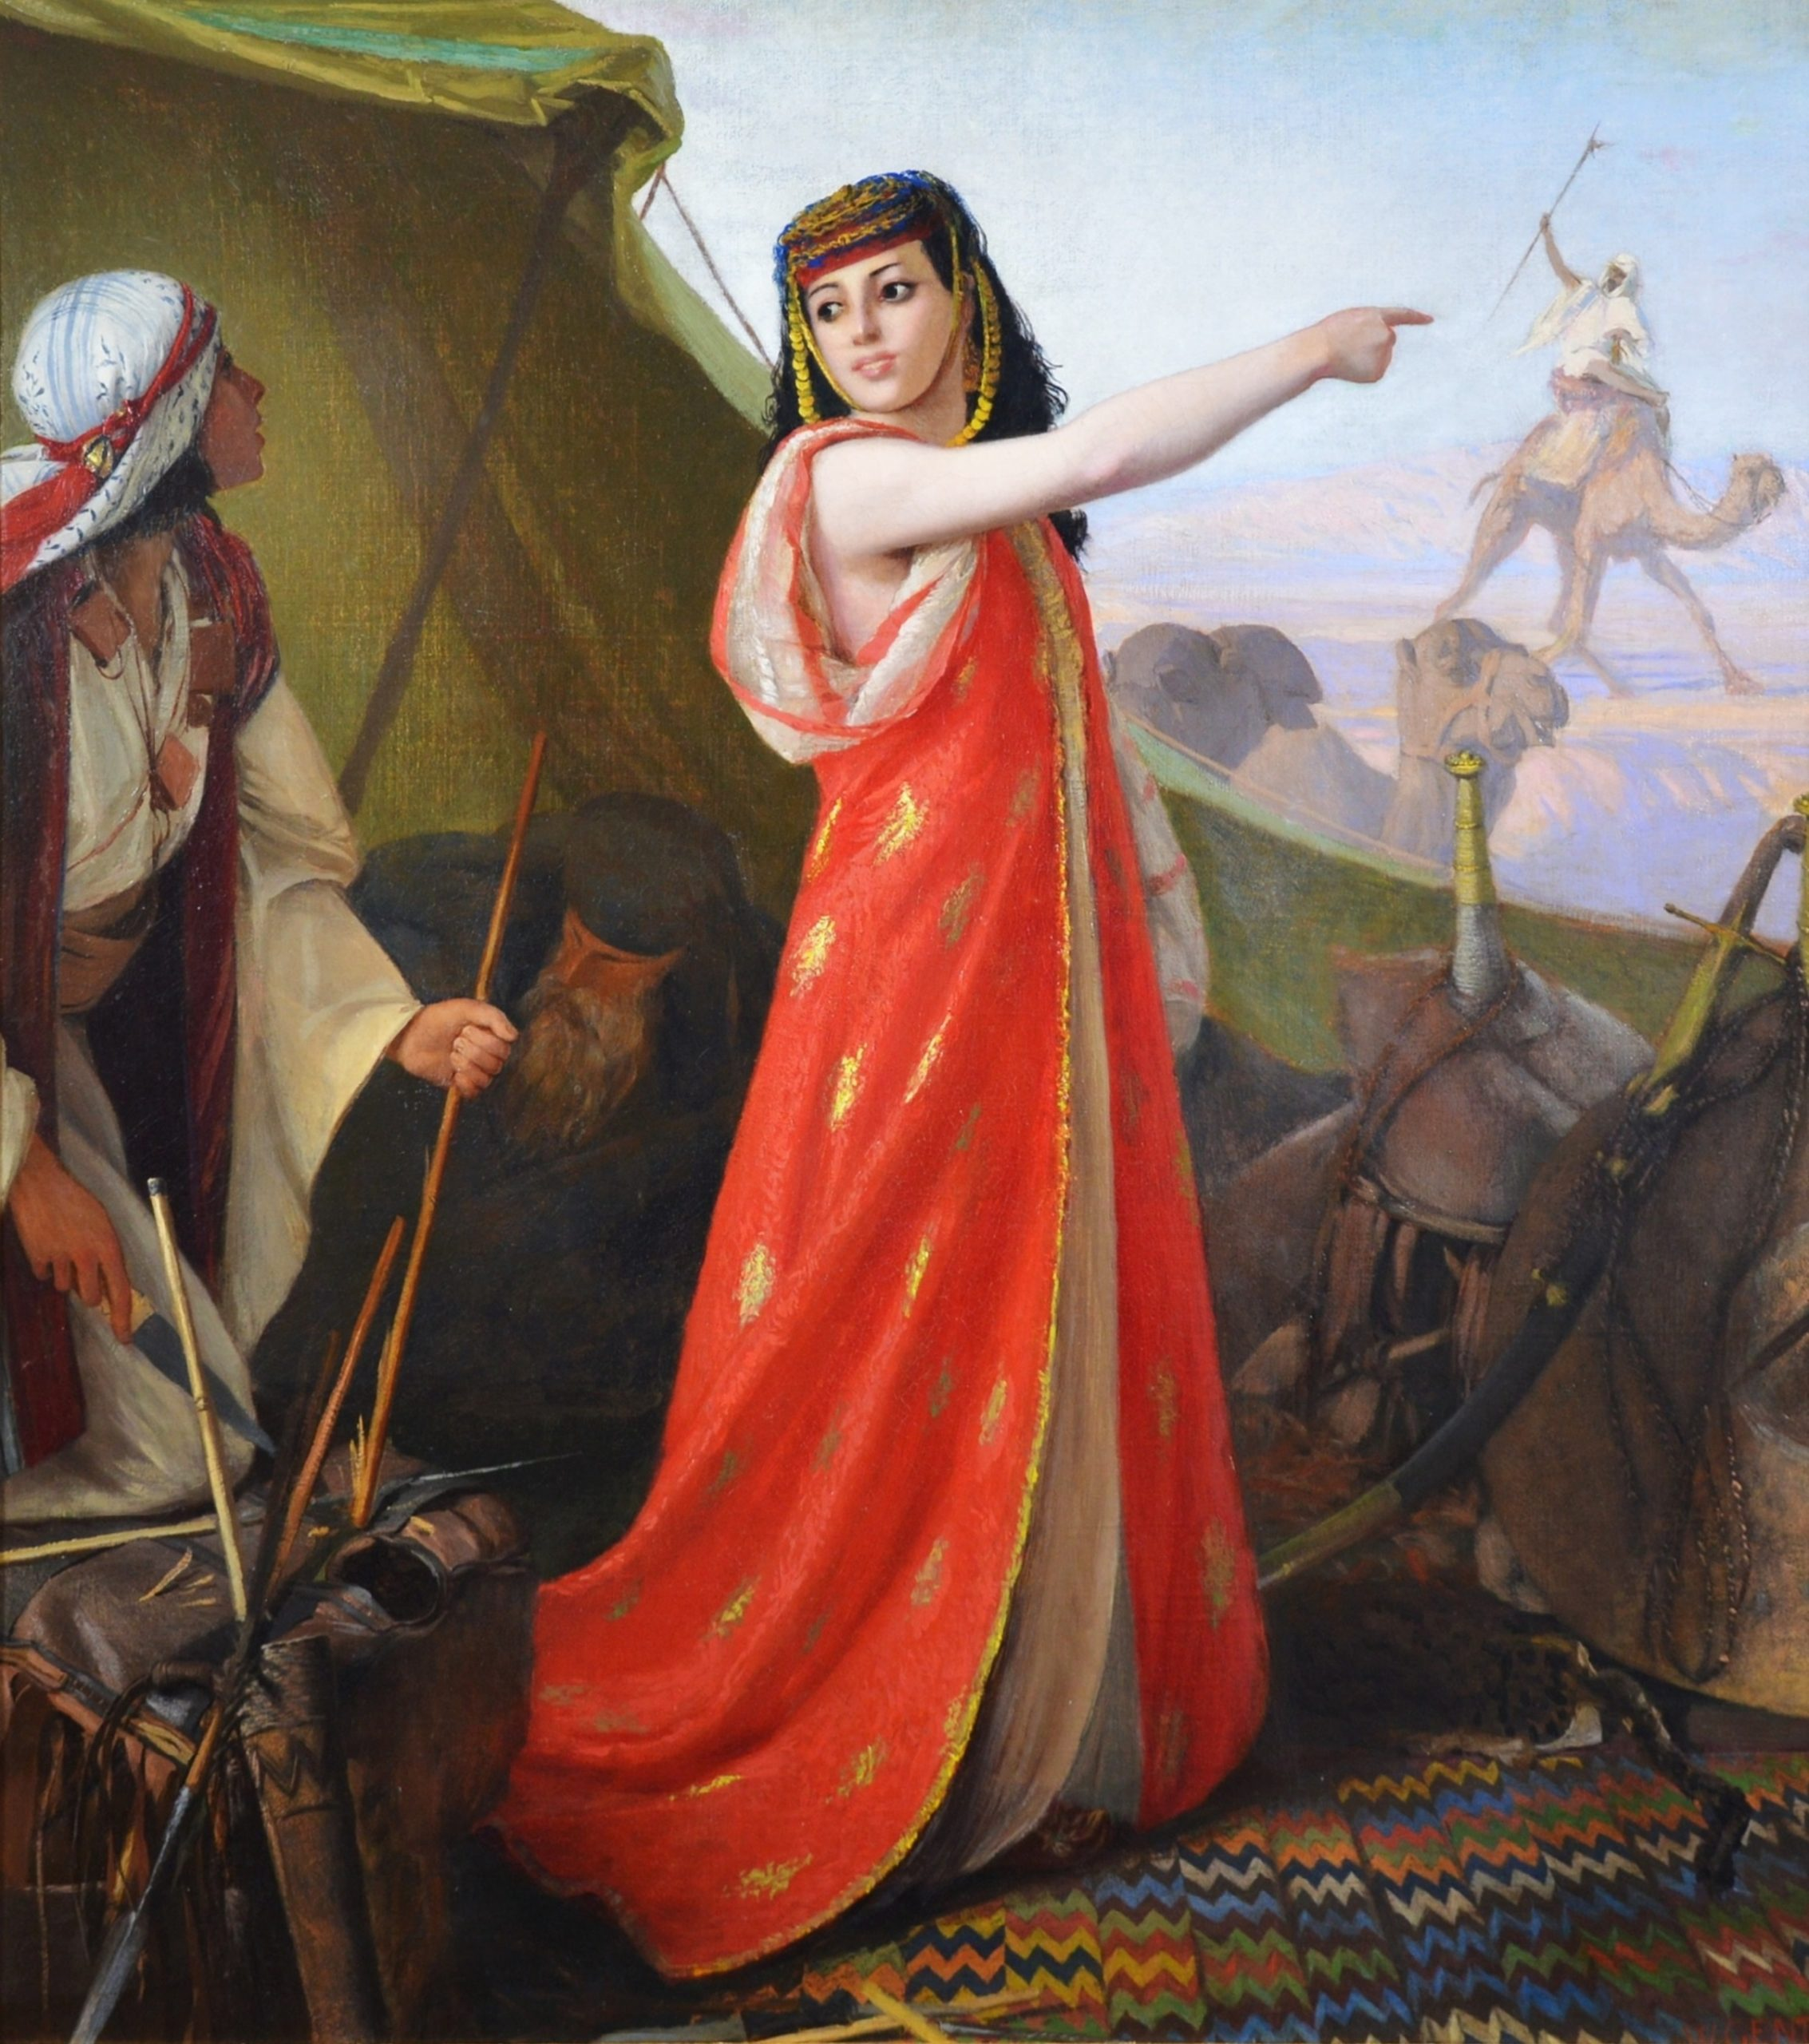 The Beautiful Sentinel - 19th Century Orientalist Oil Painting of Egyptian Girl Image